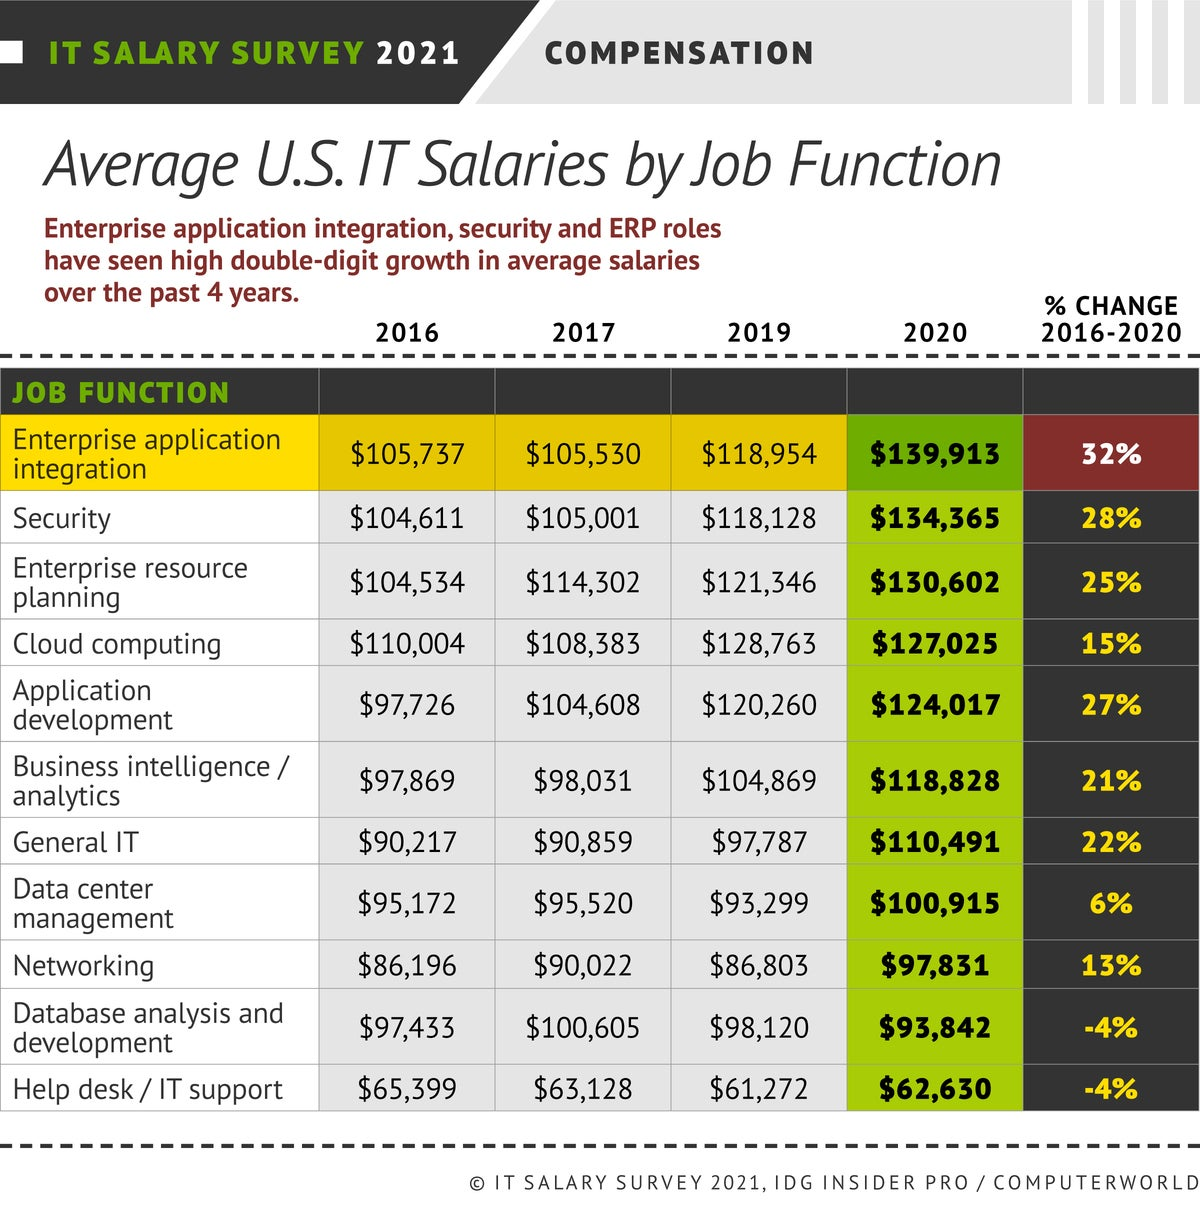 Insider Pro | Computerworld  >  IT Salary Survey 2021  >  Compensation by Job Function